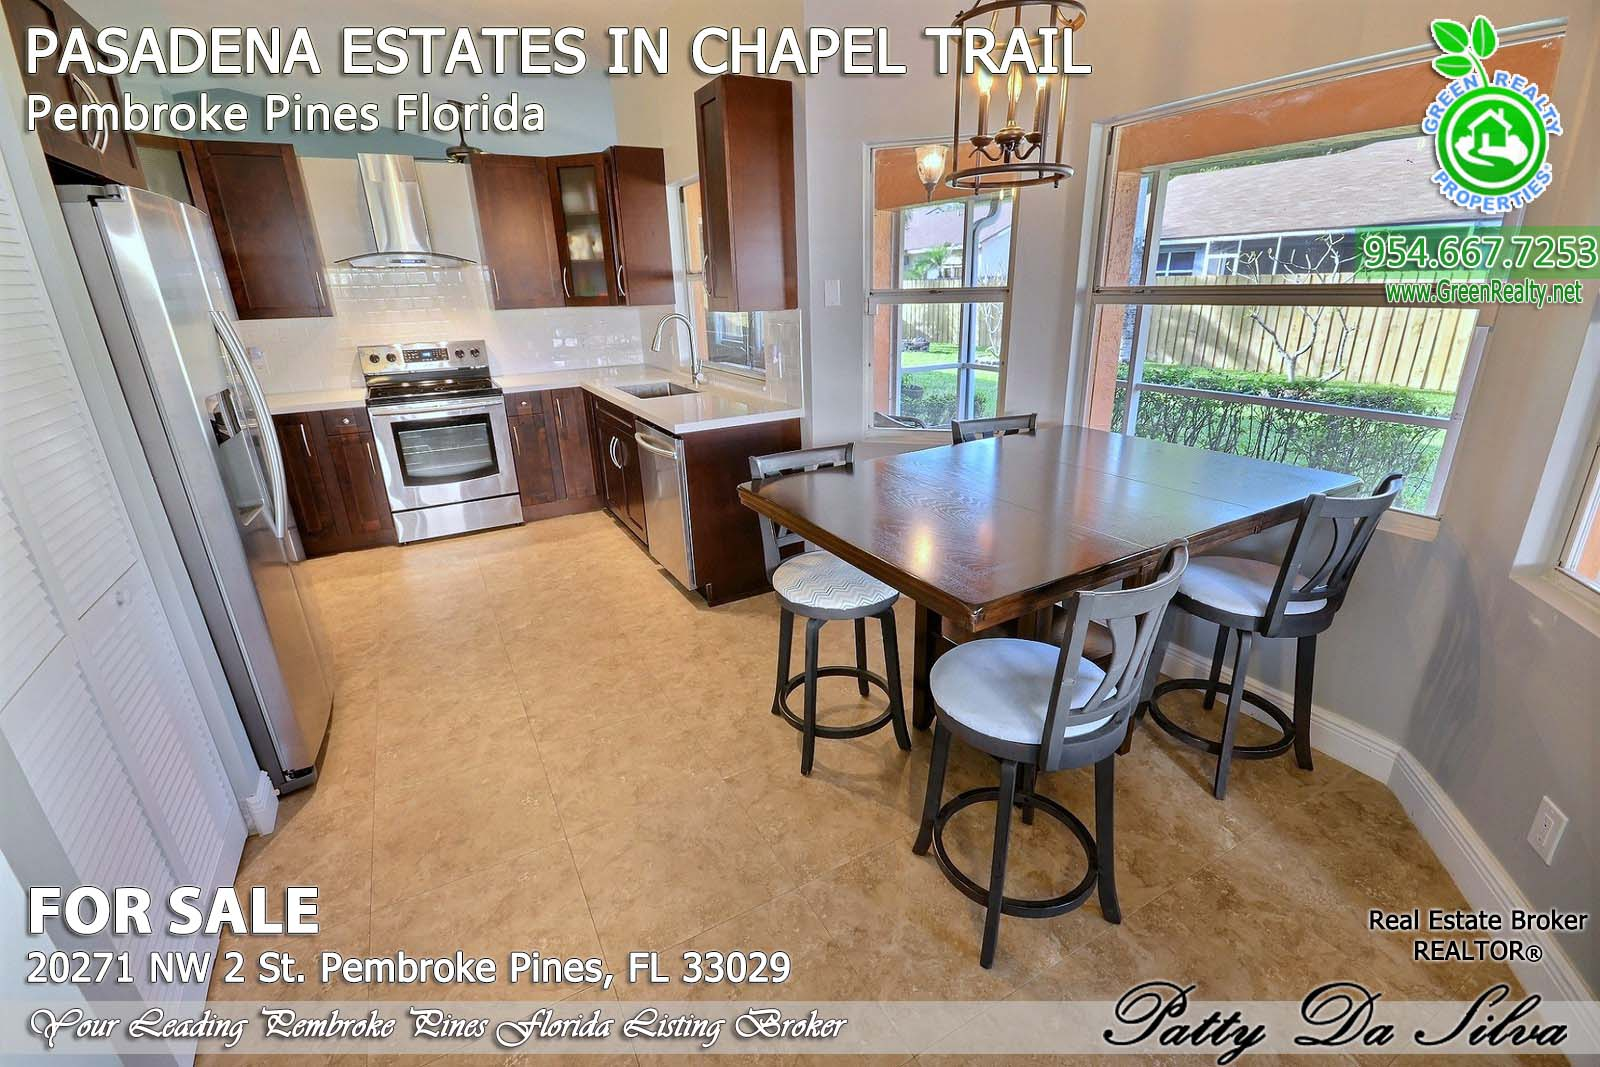 Pasadena Estates of Chapel Trail - Pembroke Pines FL (25)